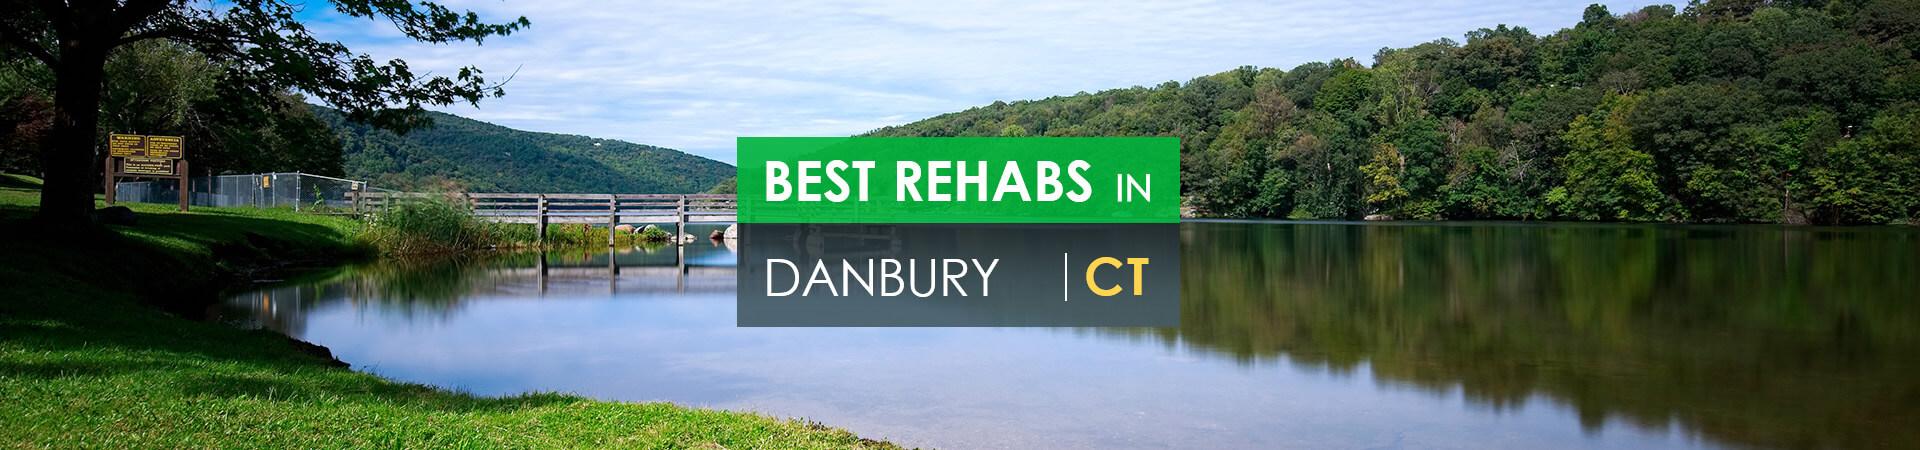 Best rehabs in Danbury, CT